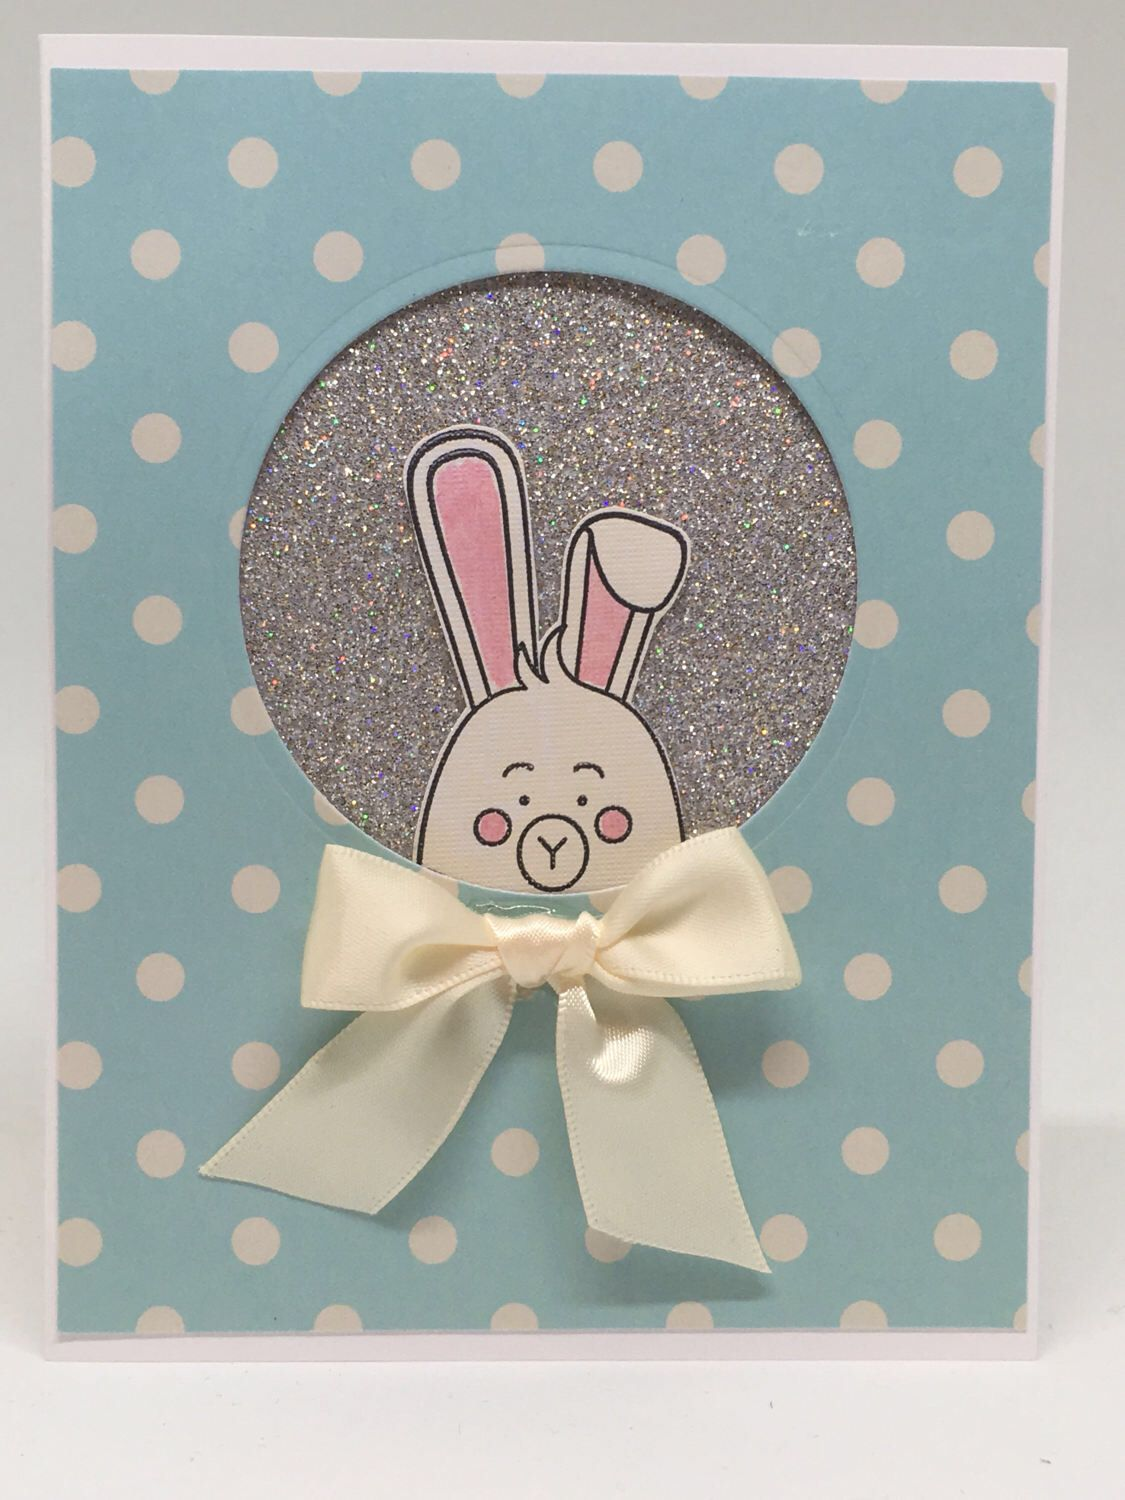 Handmade Easter Card, Handcrafted Easter Card.  Free Shipping to US & APO/FPO. by FingerStringPaperCo on Etsy https://www.etsy.com/listing/517756785/handmade-easter-card-handcrafted-easter